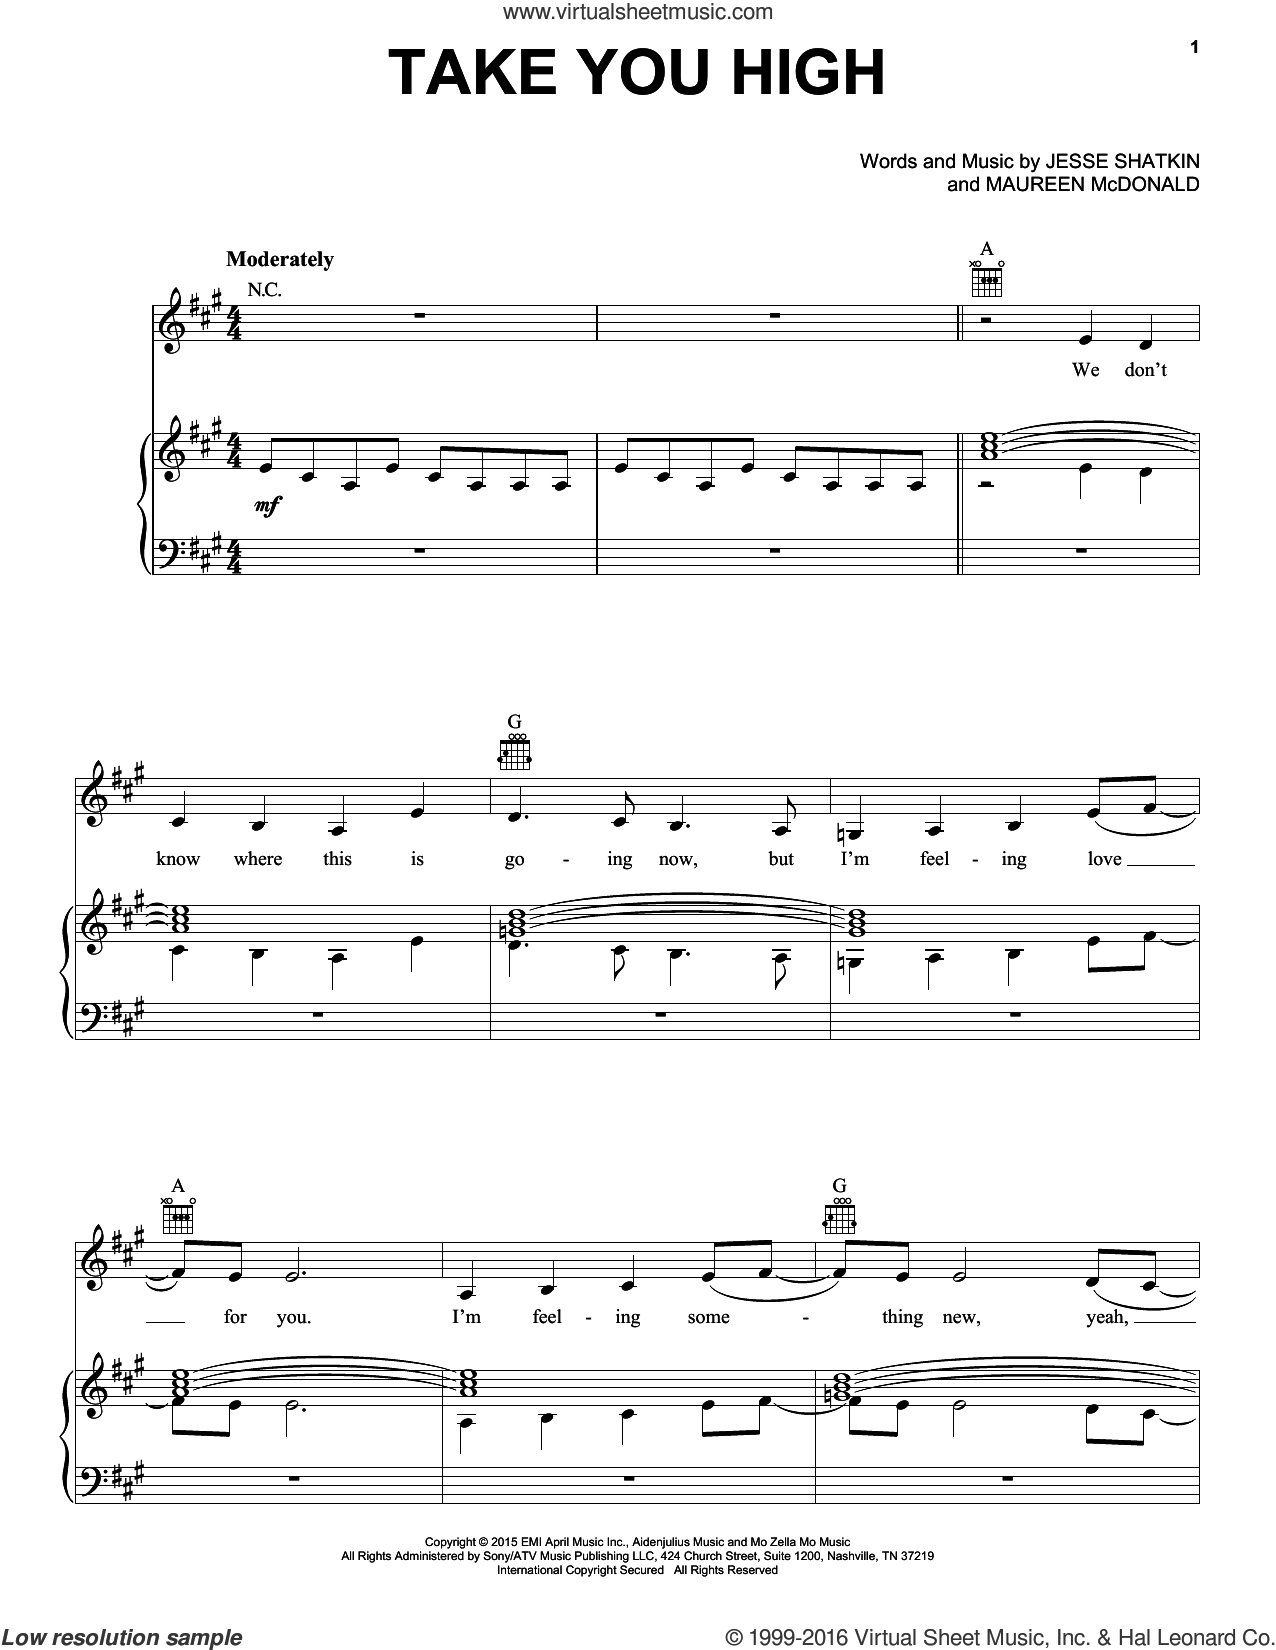 Take You High sheet music for voice, piano or guitar by Maureen McDonald, Kelly Clarkson and Jesse Shatkin. Score Image Preview.